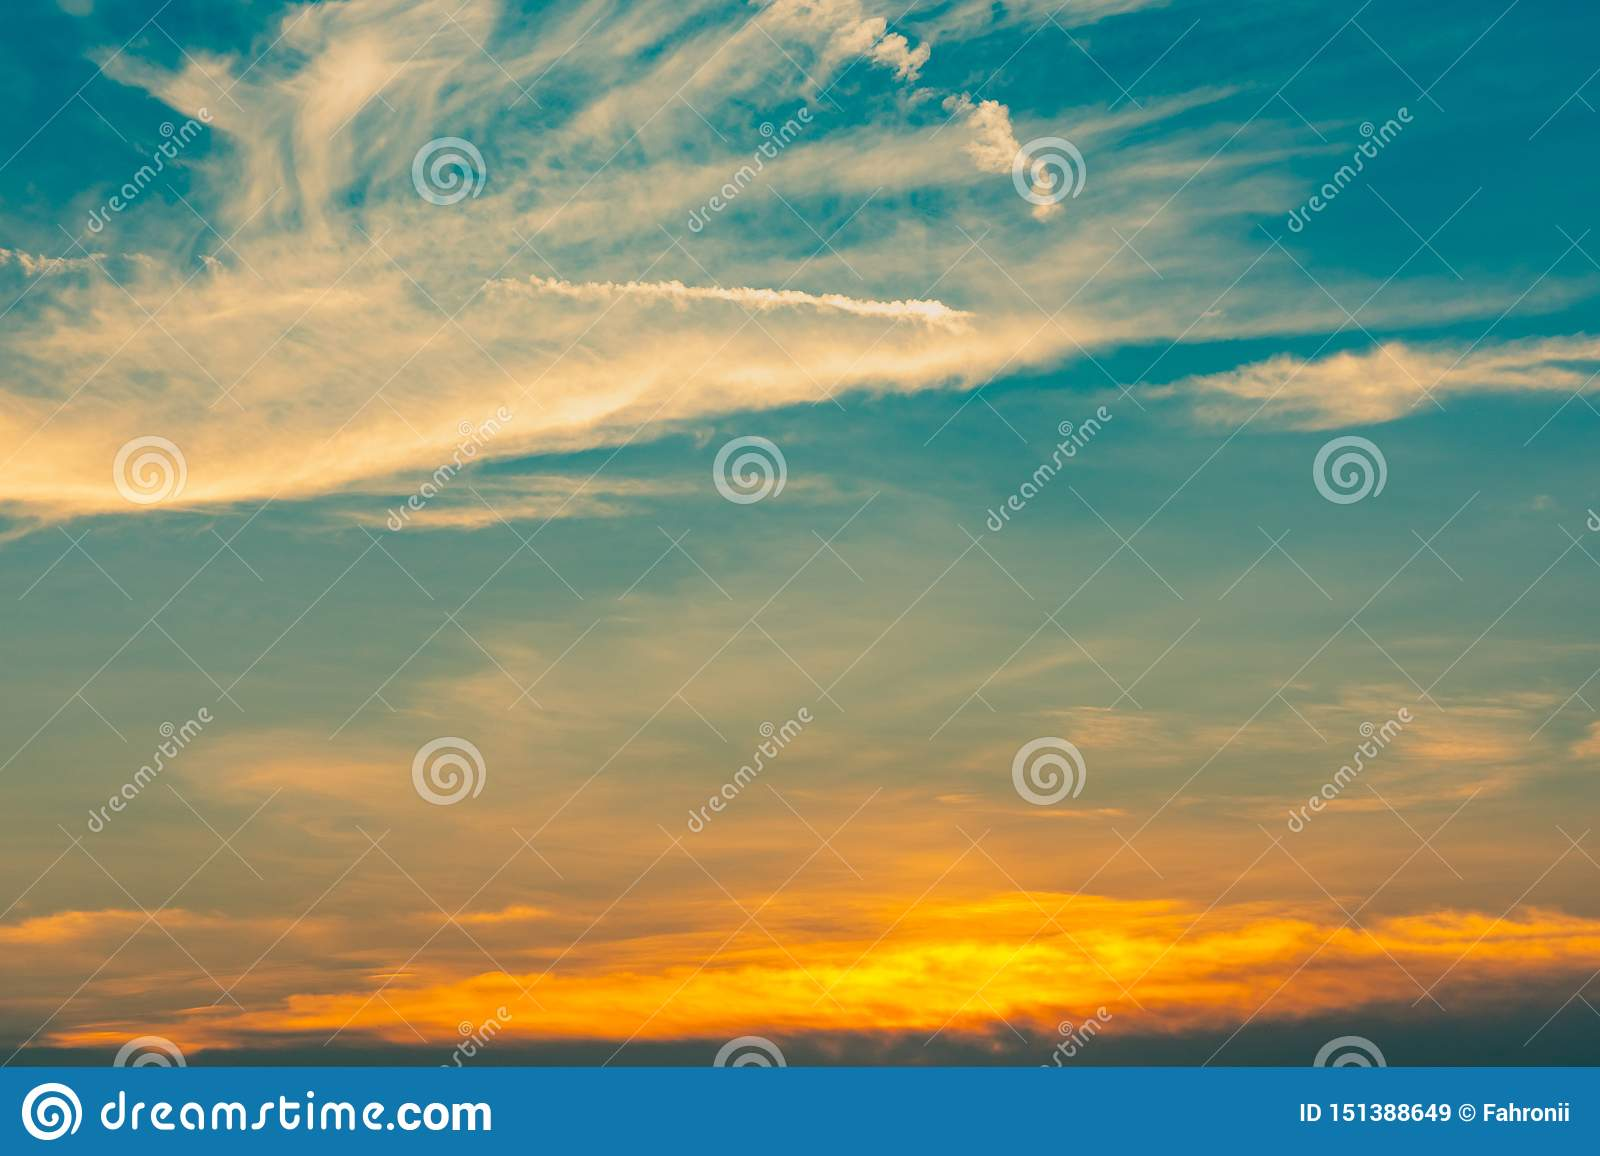 Beautiful blue and golden sky and clouds abstract background. Yellow-orange clouds on sunset sky. Warm weather background. Art